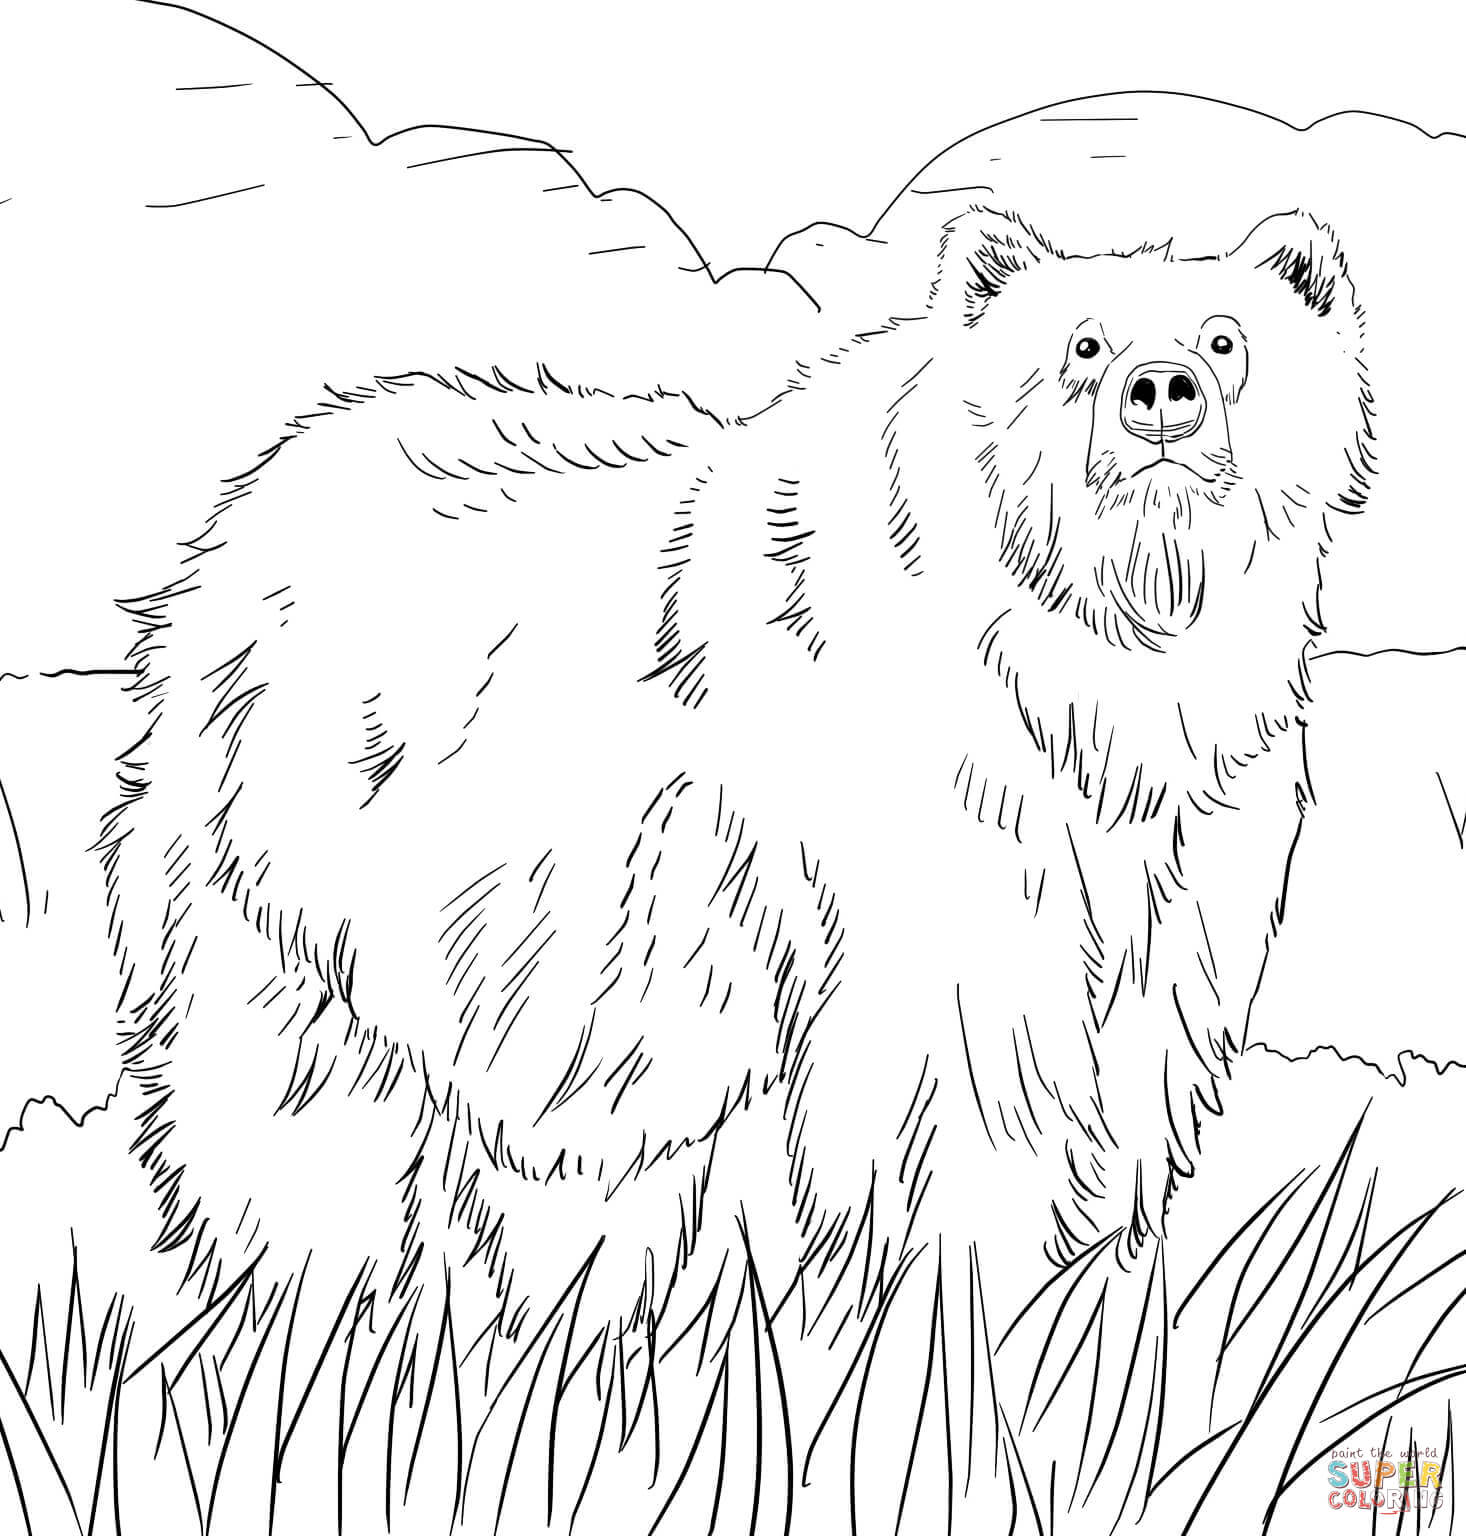 brown bear colouring page top 10 free printable brown bear coloring pages online page bear brown colouring